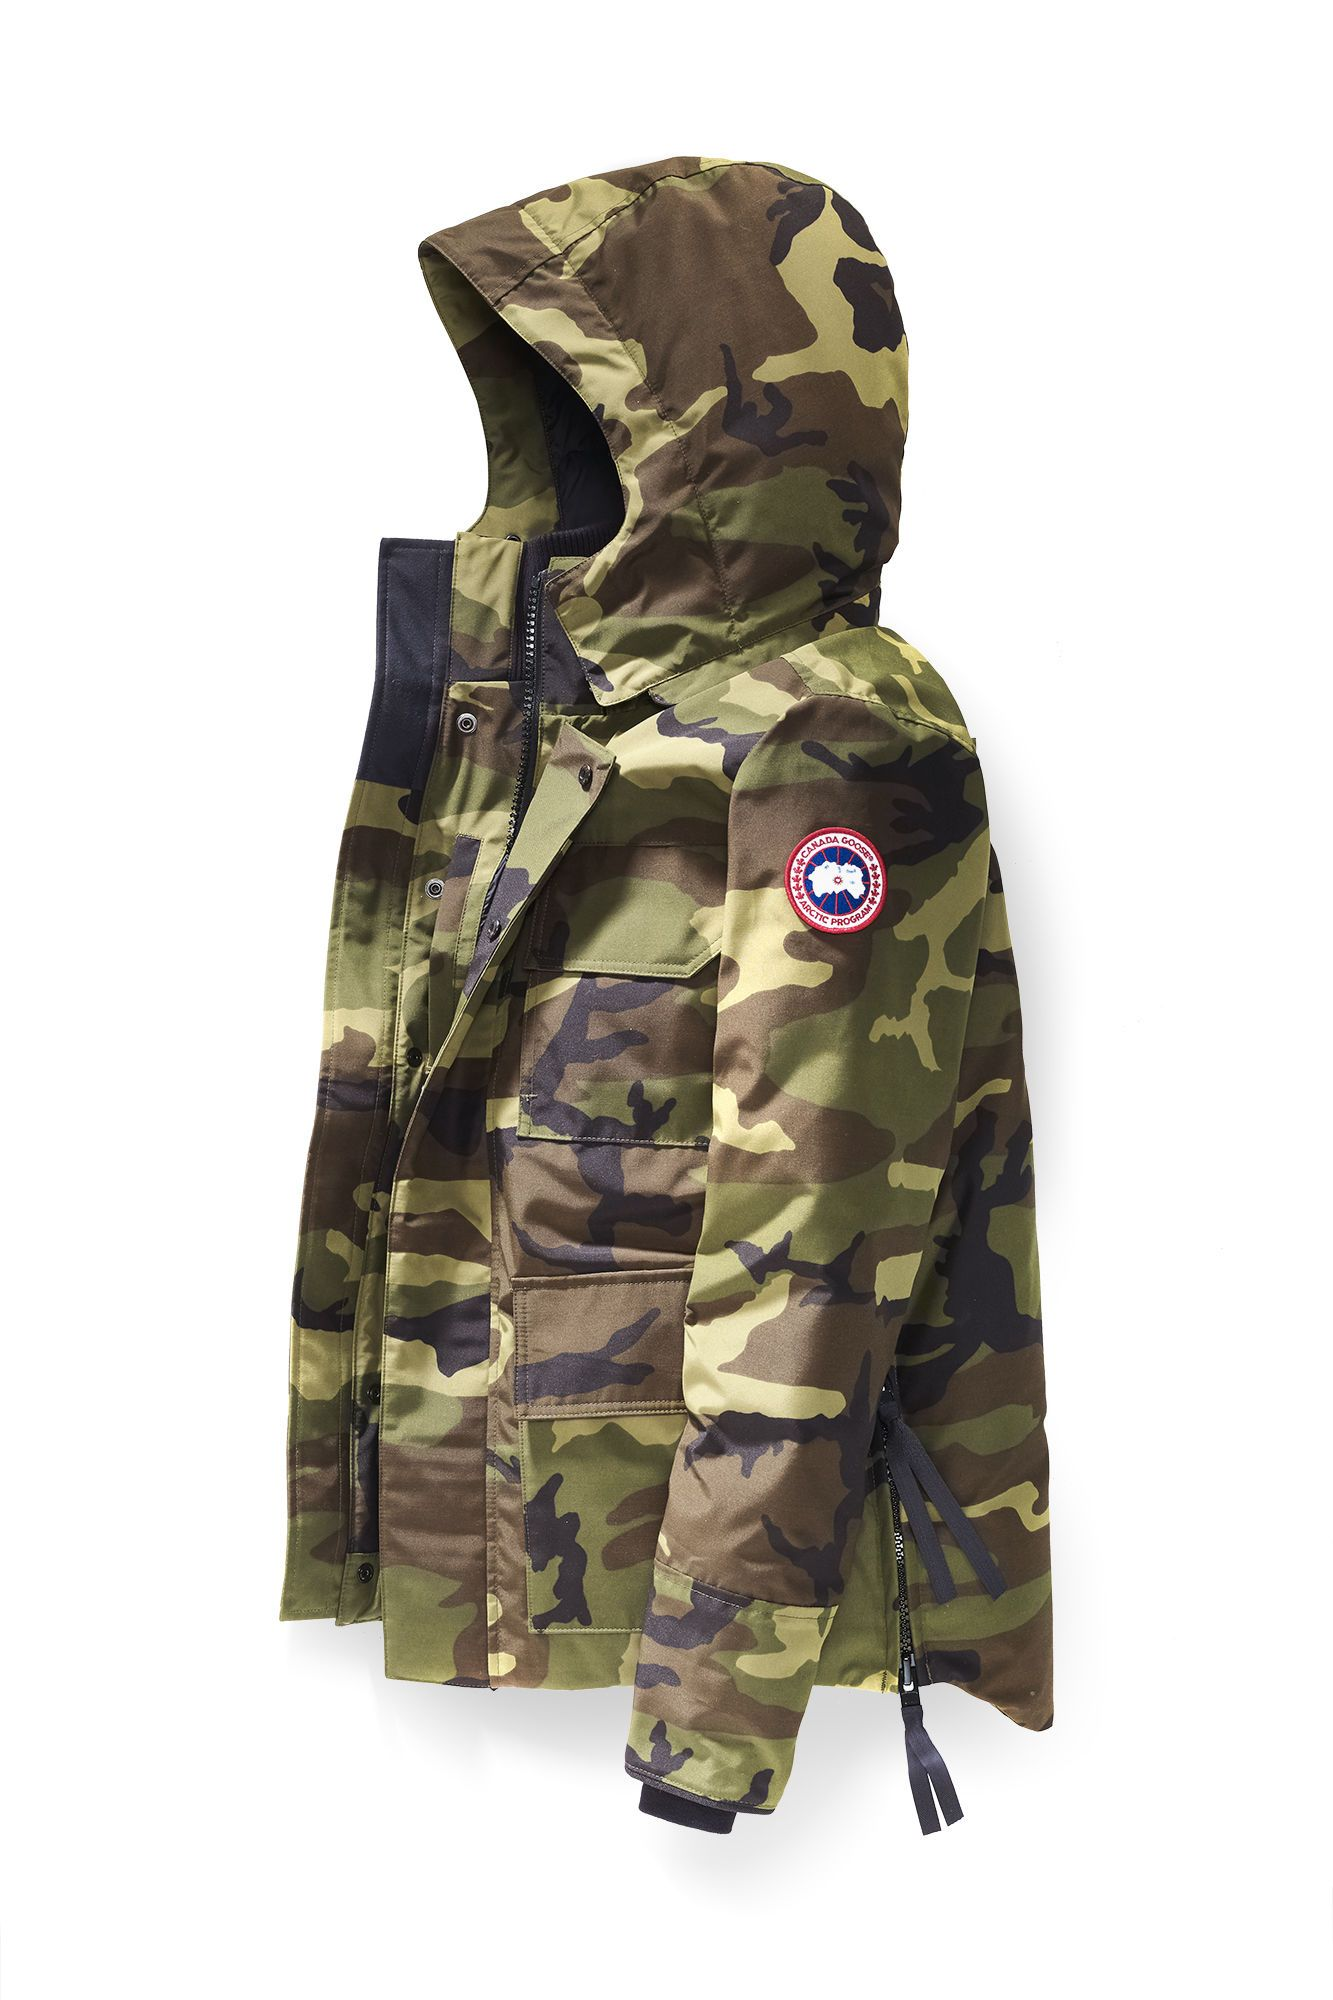 80bf0bc7977a9 Canada Goose Maitland Parka- Camo | Style... in 2019 | Mens parka ...